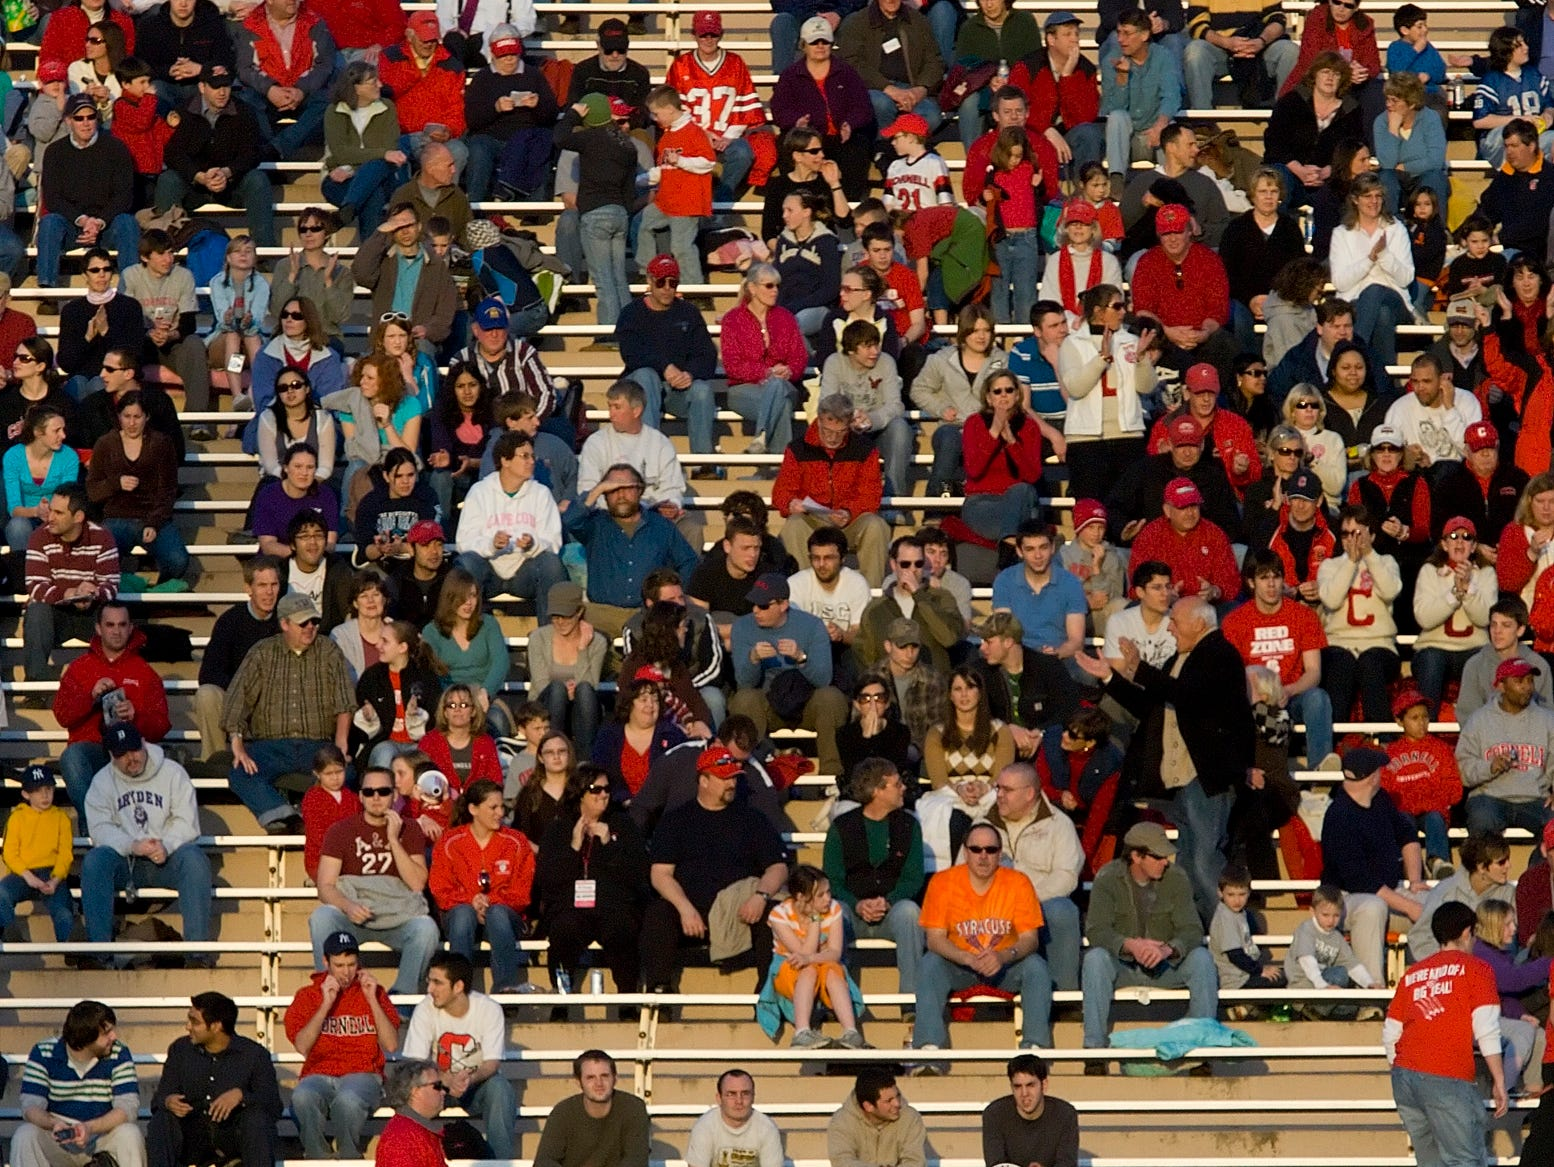 2008: Fans gather in the stands of Schoellkopf Field as the Cornell Mens Lacrosse team prepares to take on Syracuse Tuesday on the Cornell University campus.